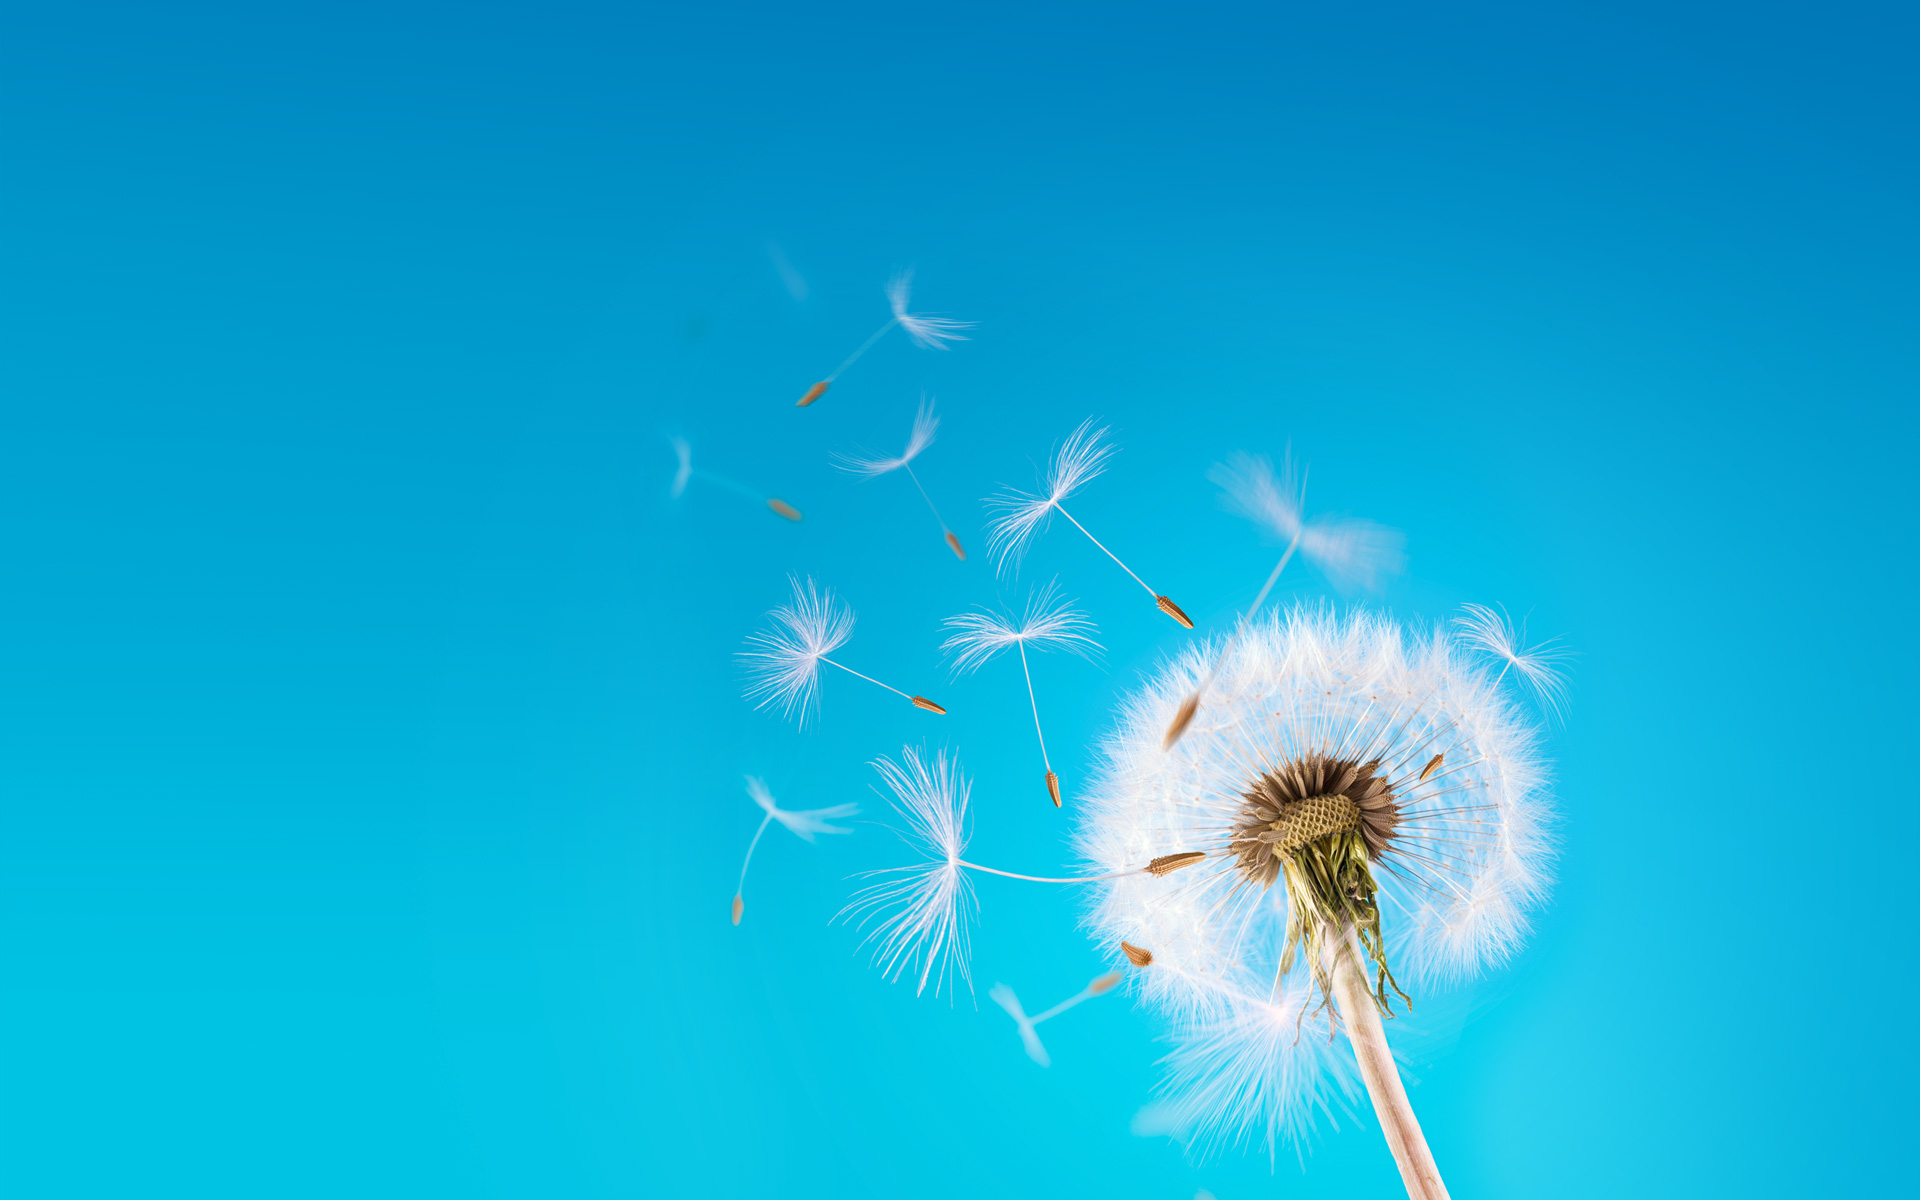 Dandelion wallpaper   973379 1920x1200